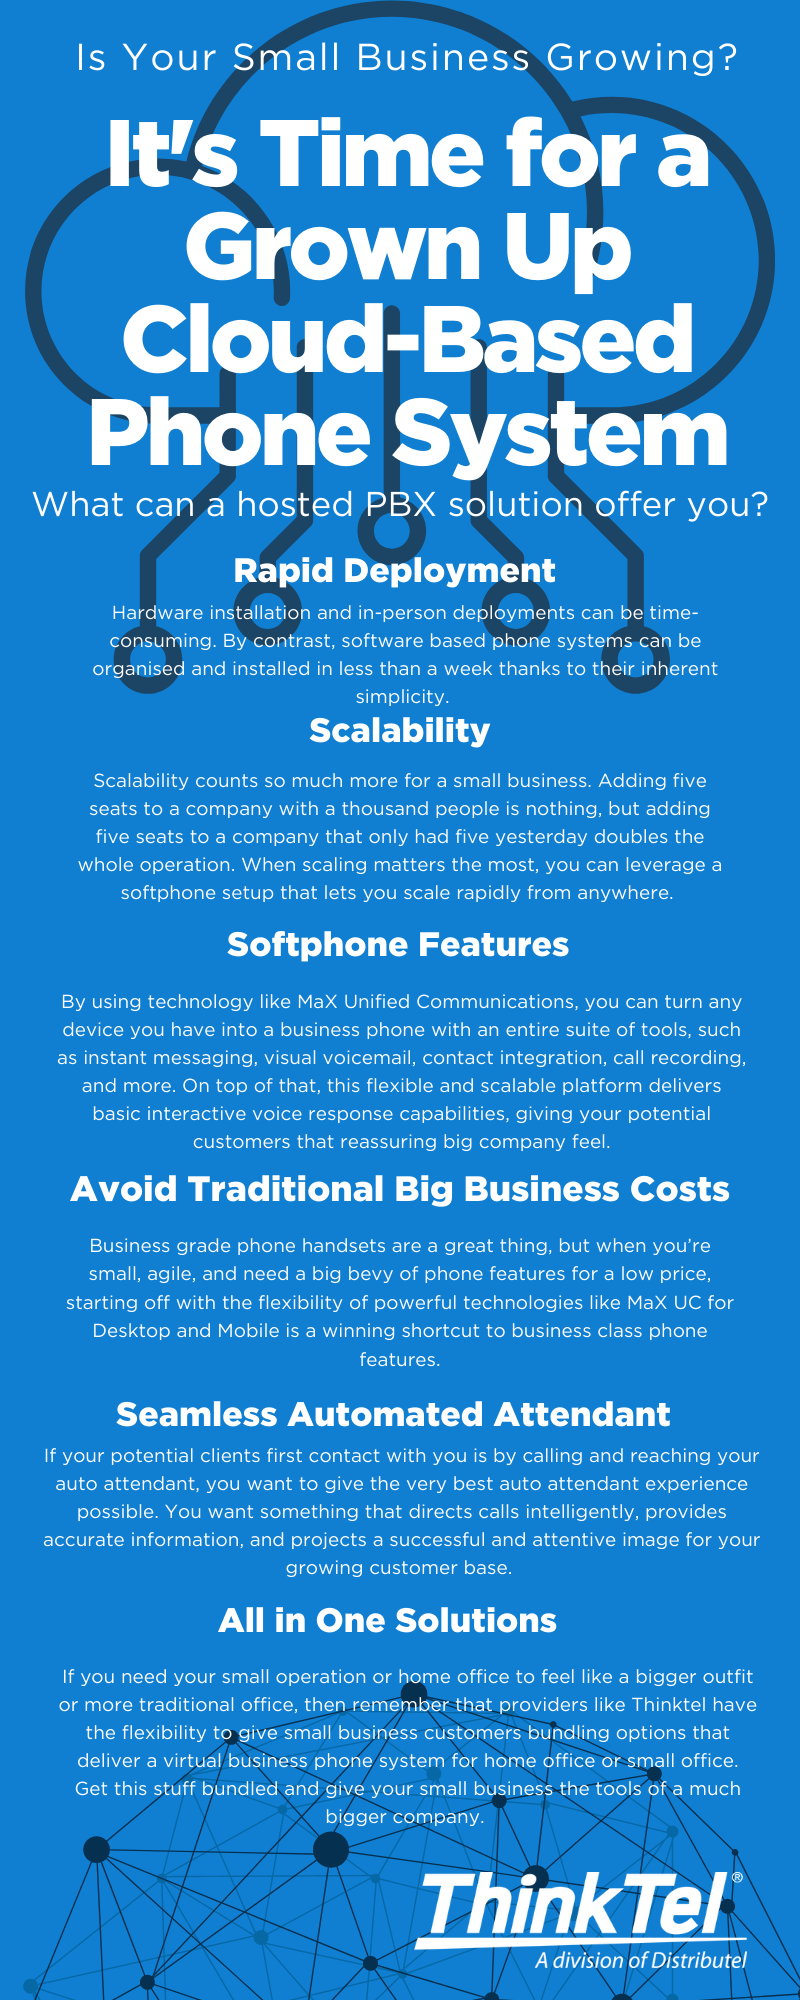 Is Your Small Business Growing? It's Time for a Grown Up Cloud-Based Phone System